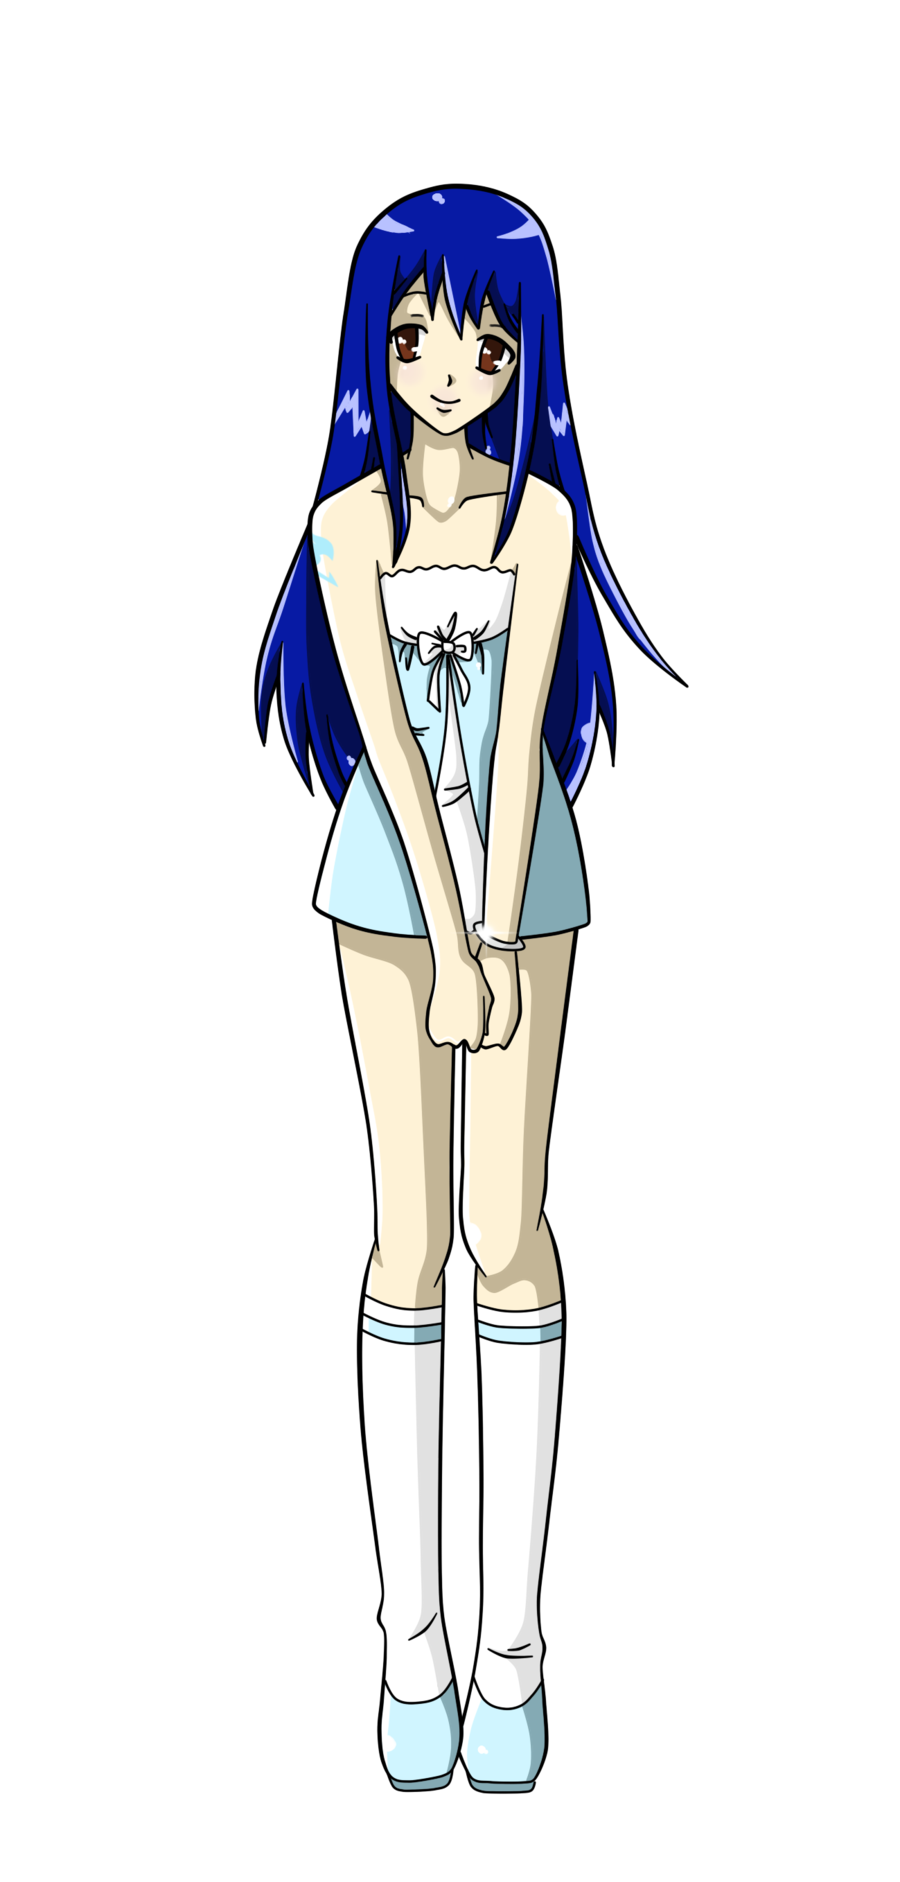 Anima drawing full body. Collection of anime